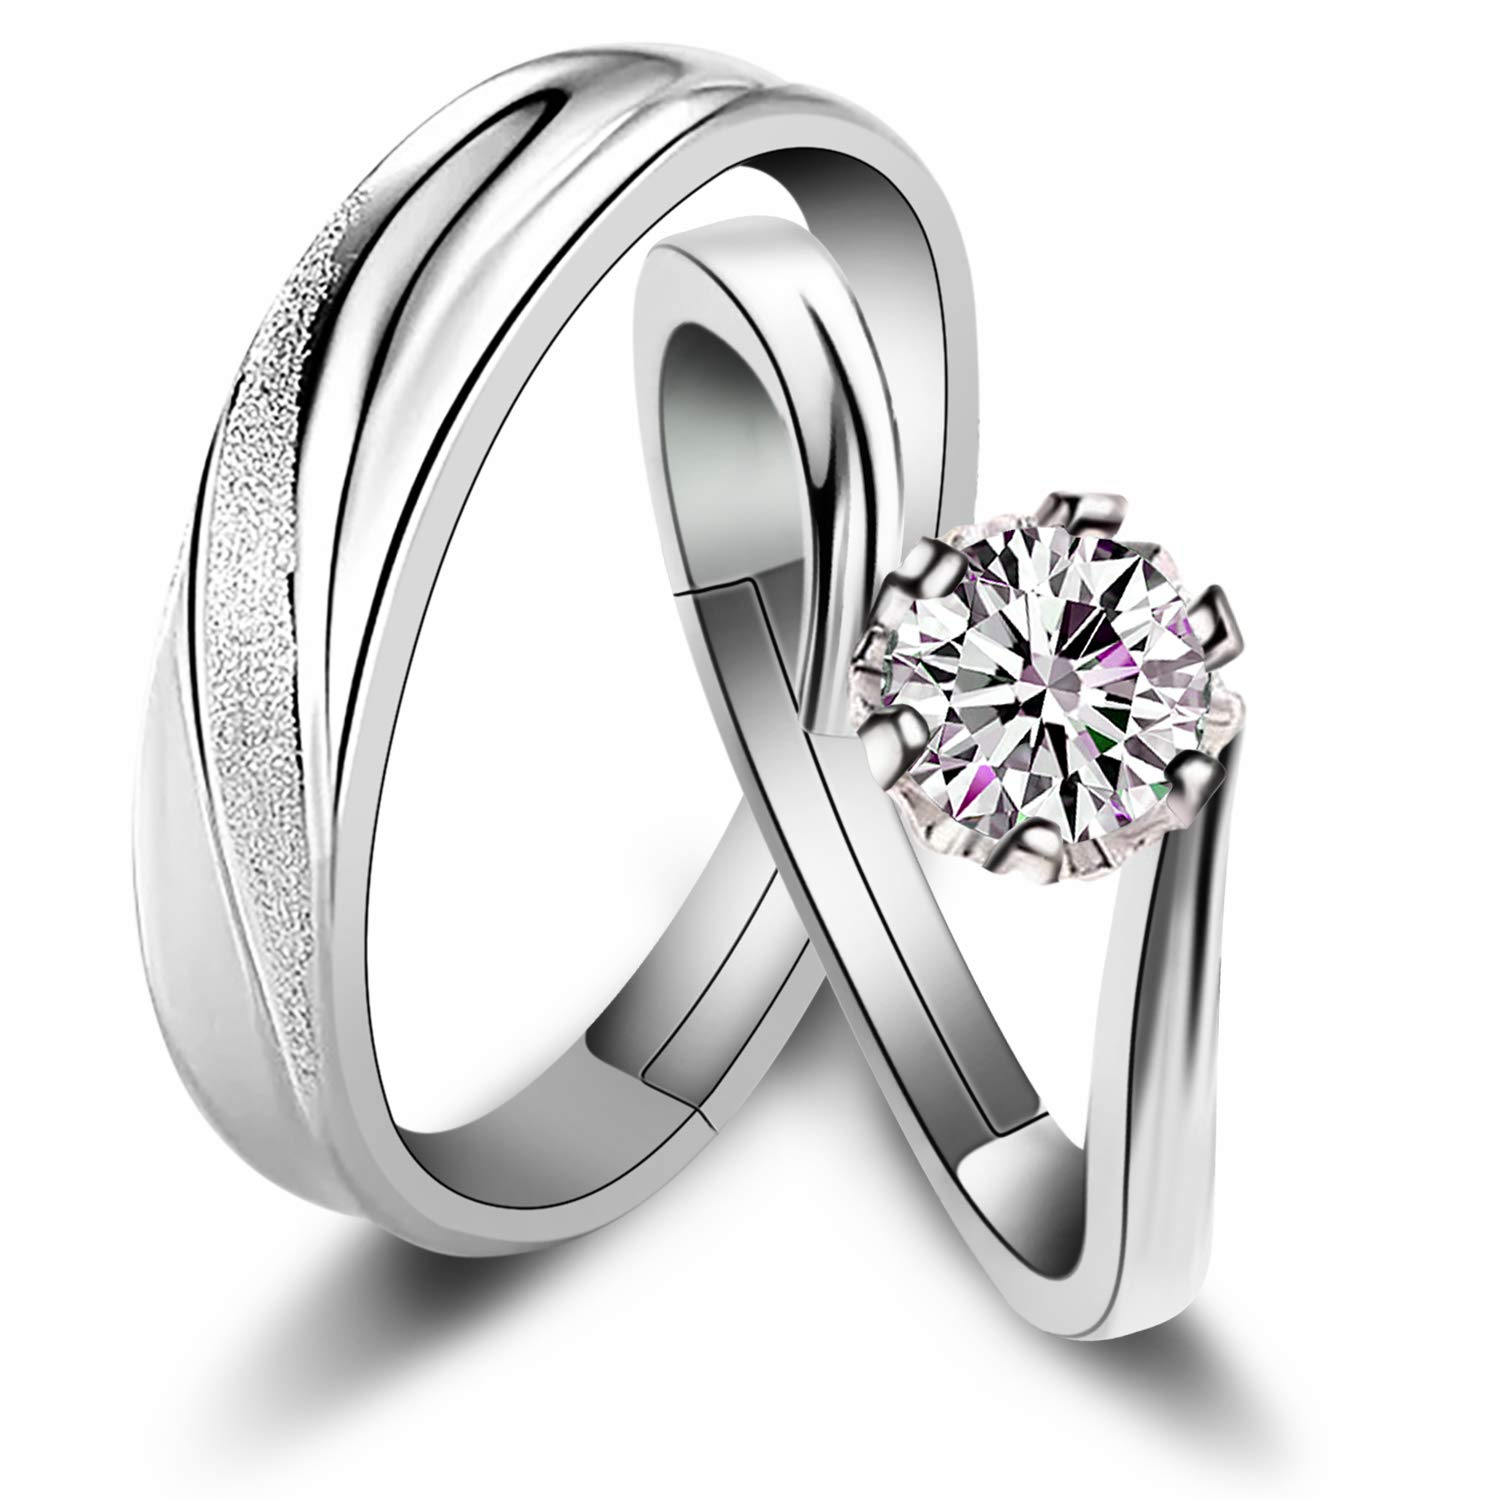 e4c0374dbd Sunamy Endless Love Matching Couple Rings for Him and Her Set, Adjustable  925 Sterling Silver Romantic Heart Design, Promise Ring Engagement Ring ...